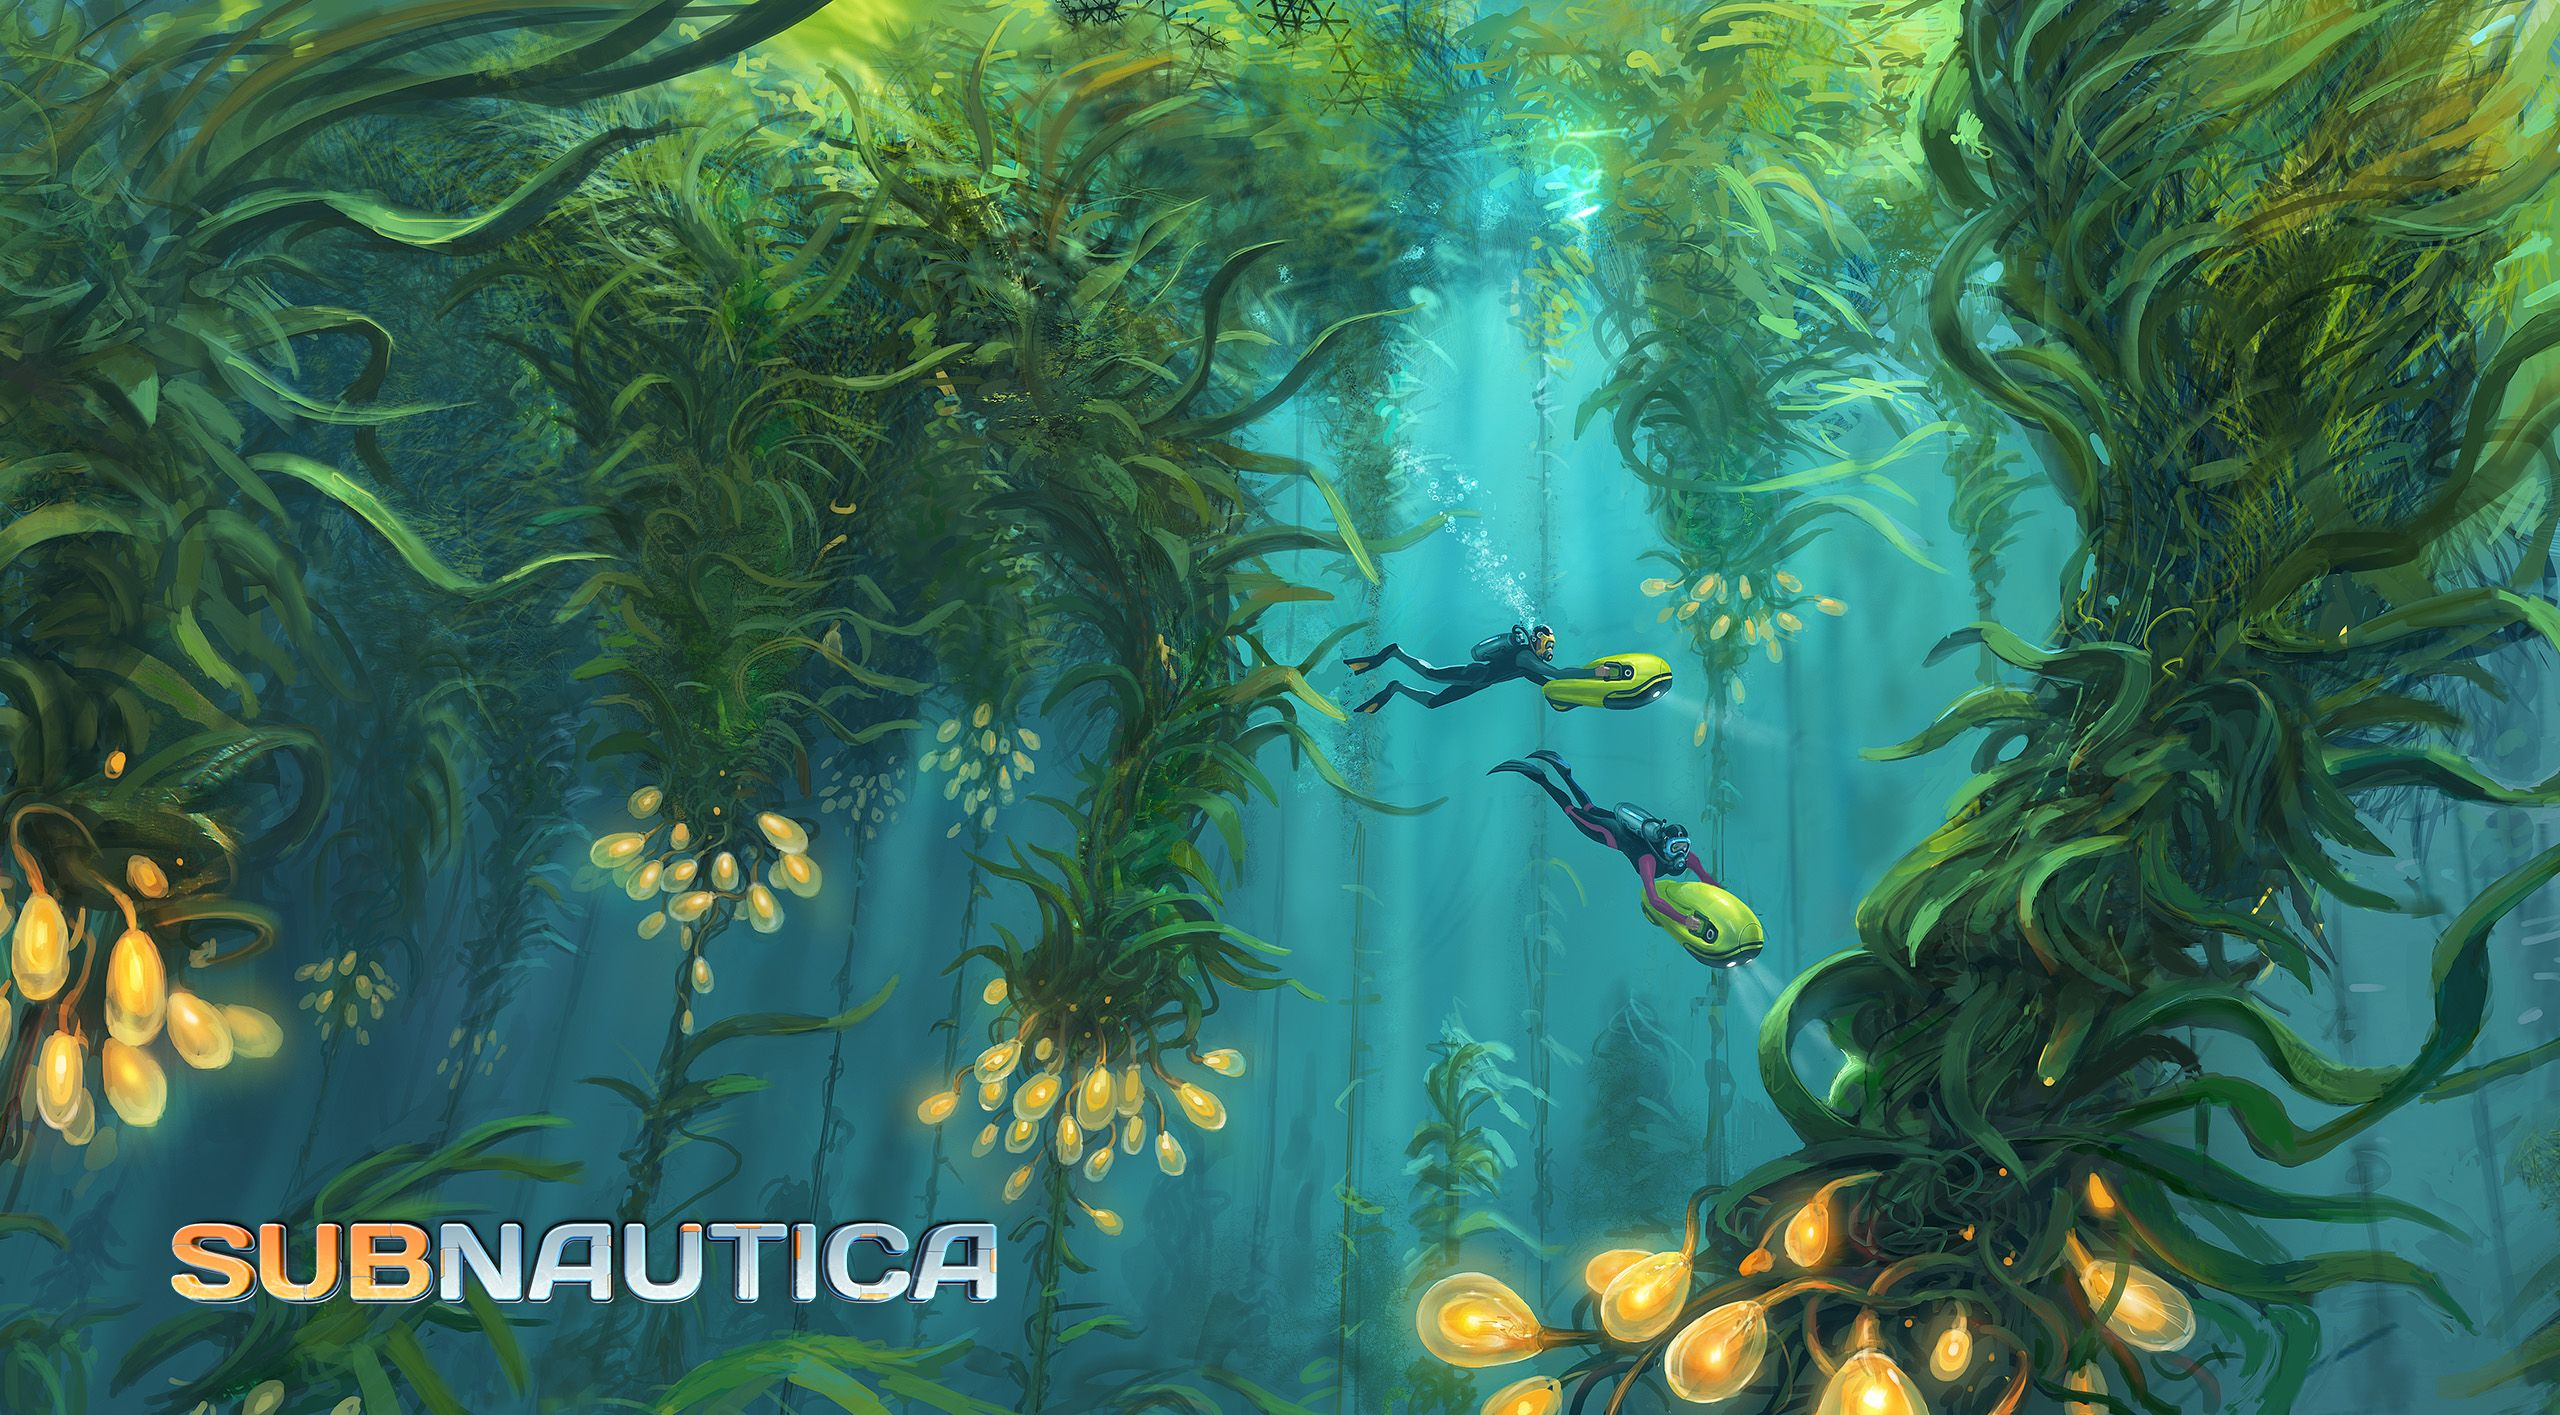 Subnautica Concept Art Kelp Forest Image Subnautica Concept Art Kelp Forest Concept Art Just keep breaking limestone nodes, and try not to get too frustrated with the awkward rng on the drops. subnautica concept art kelp forest